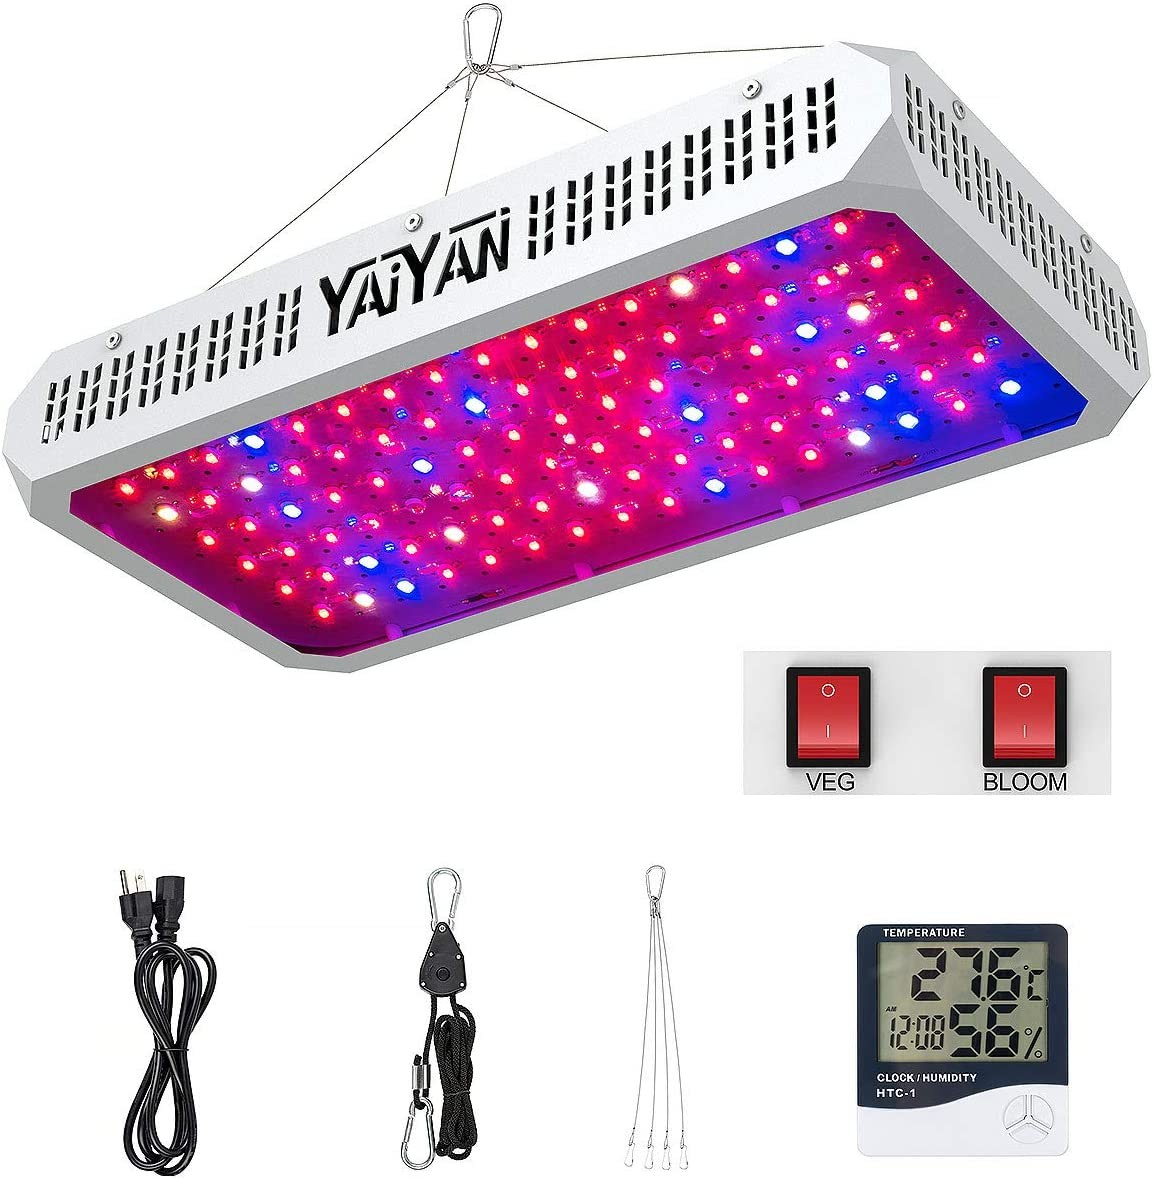 Led Grow Light YAIYAN 960W Max Luxury goods 80% OFF Plant and Lights Bl with Veg